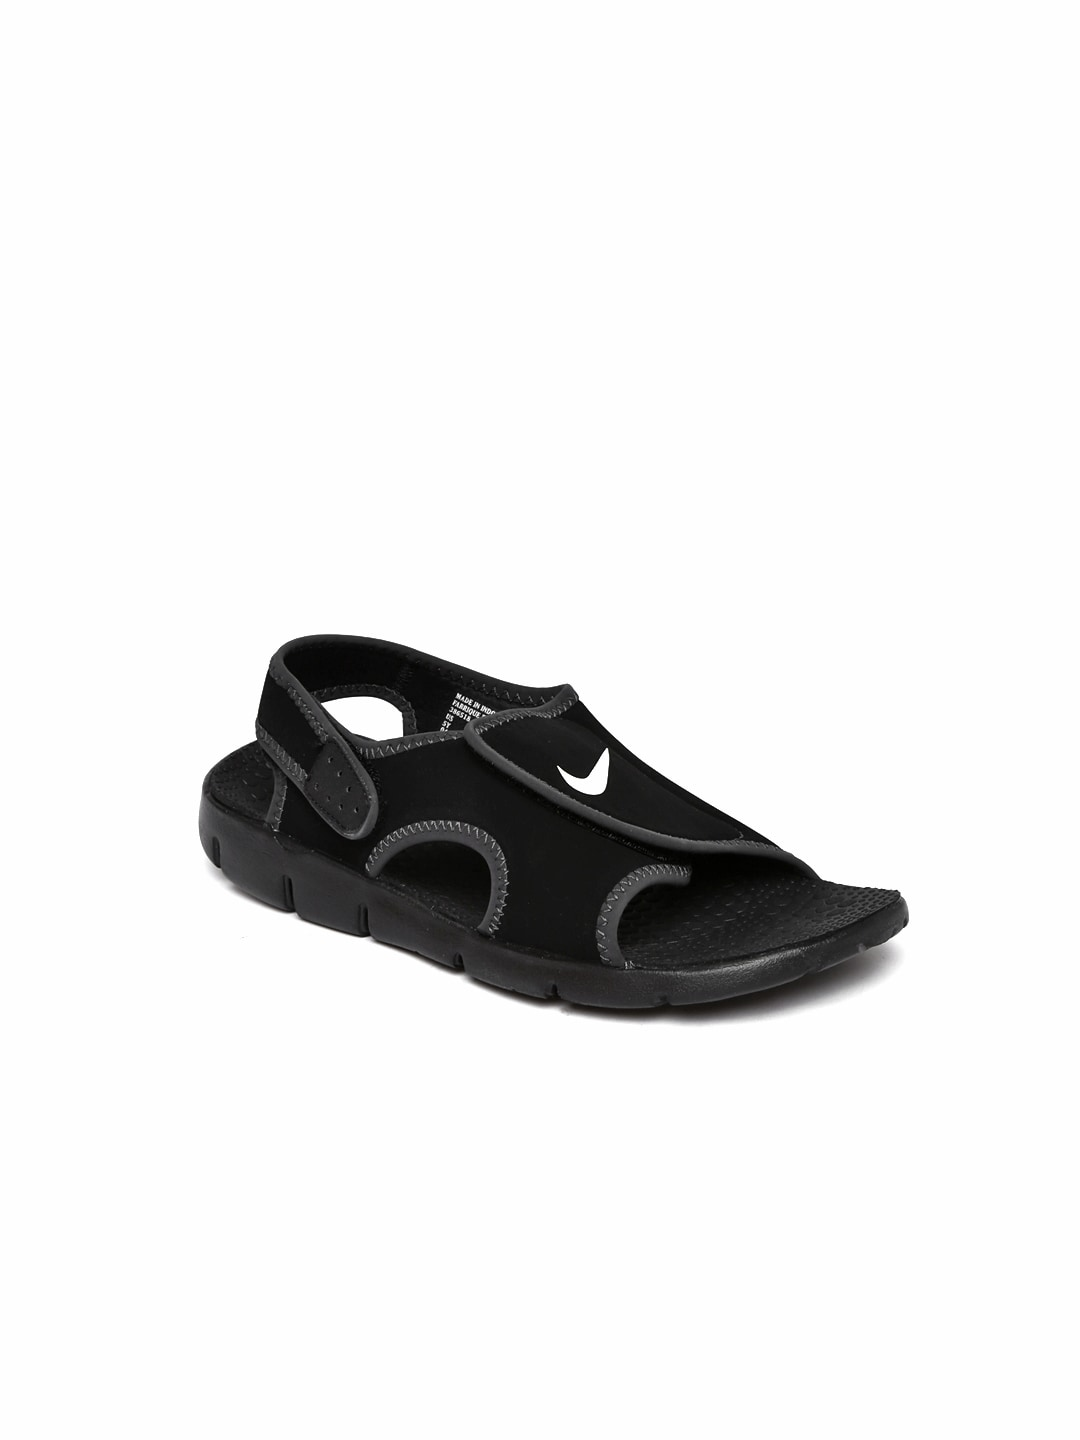 66d06dfe01e Nike Flip-Flops - Buy Nike Flip-Flops for Men Women Online